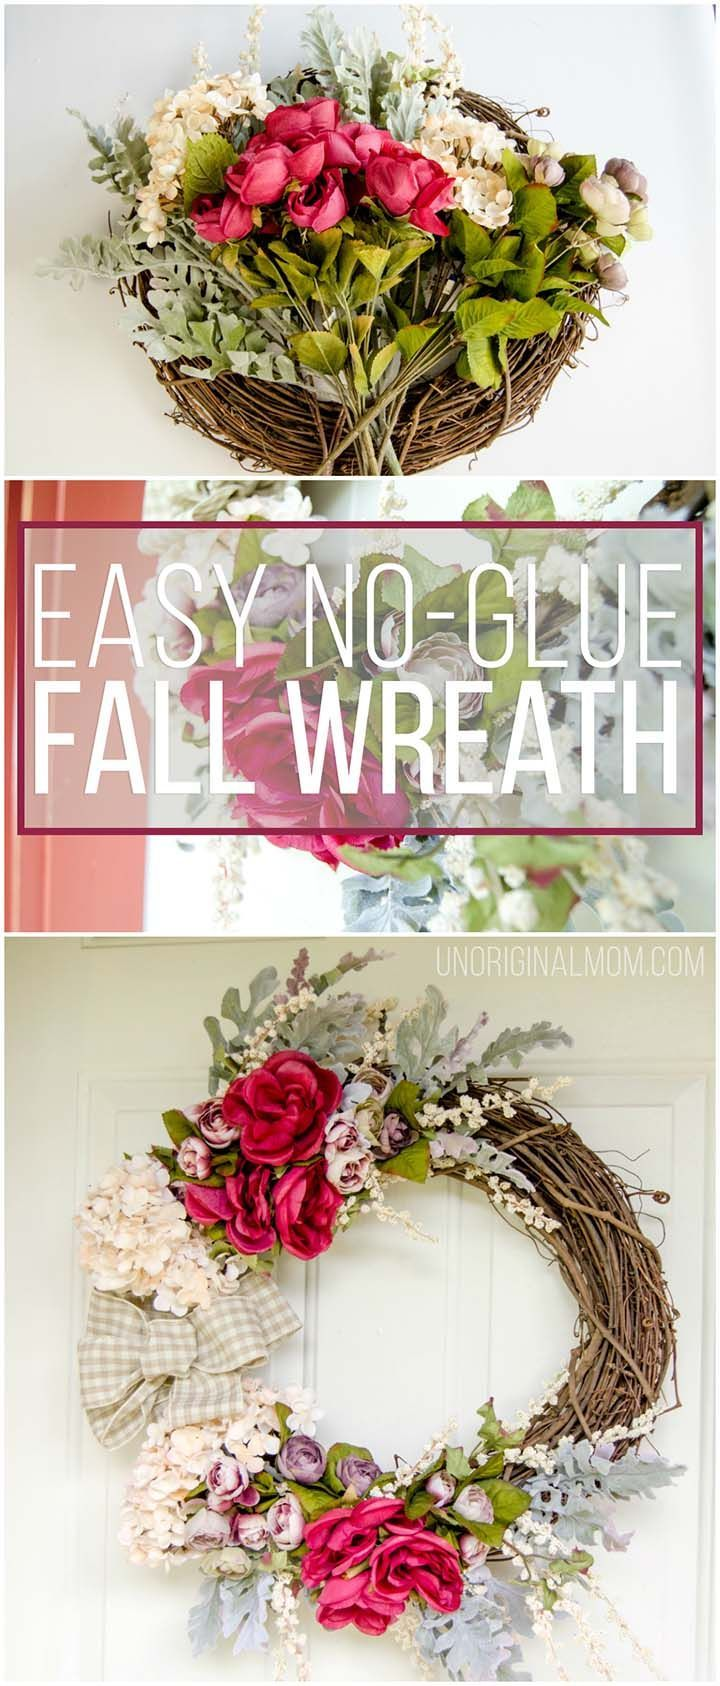 Create your own beautiful fall wreath in less than 30 minutes - you don't even have to use glue! | no-glue wreath tutorial | fall wreath | neutral fall wreath | fall front porch #fallwreath